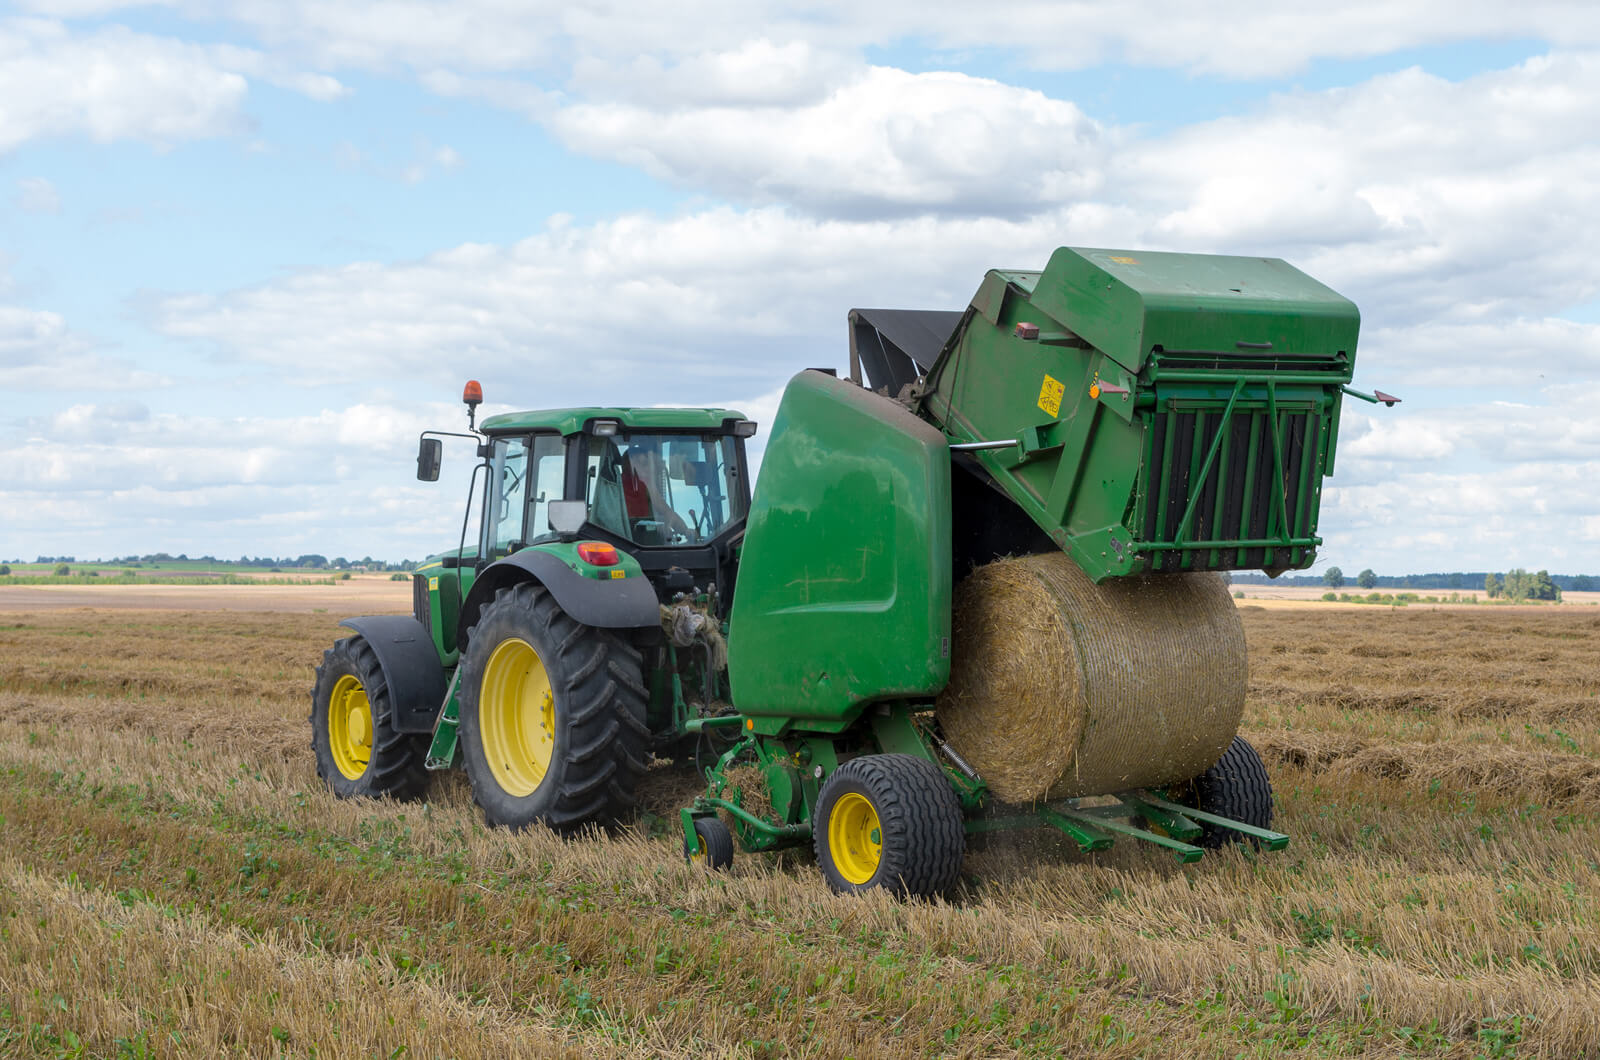 Unregistered Plant & Machinery Insurance